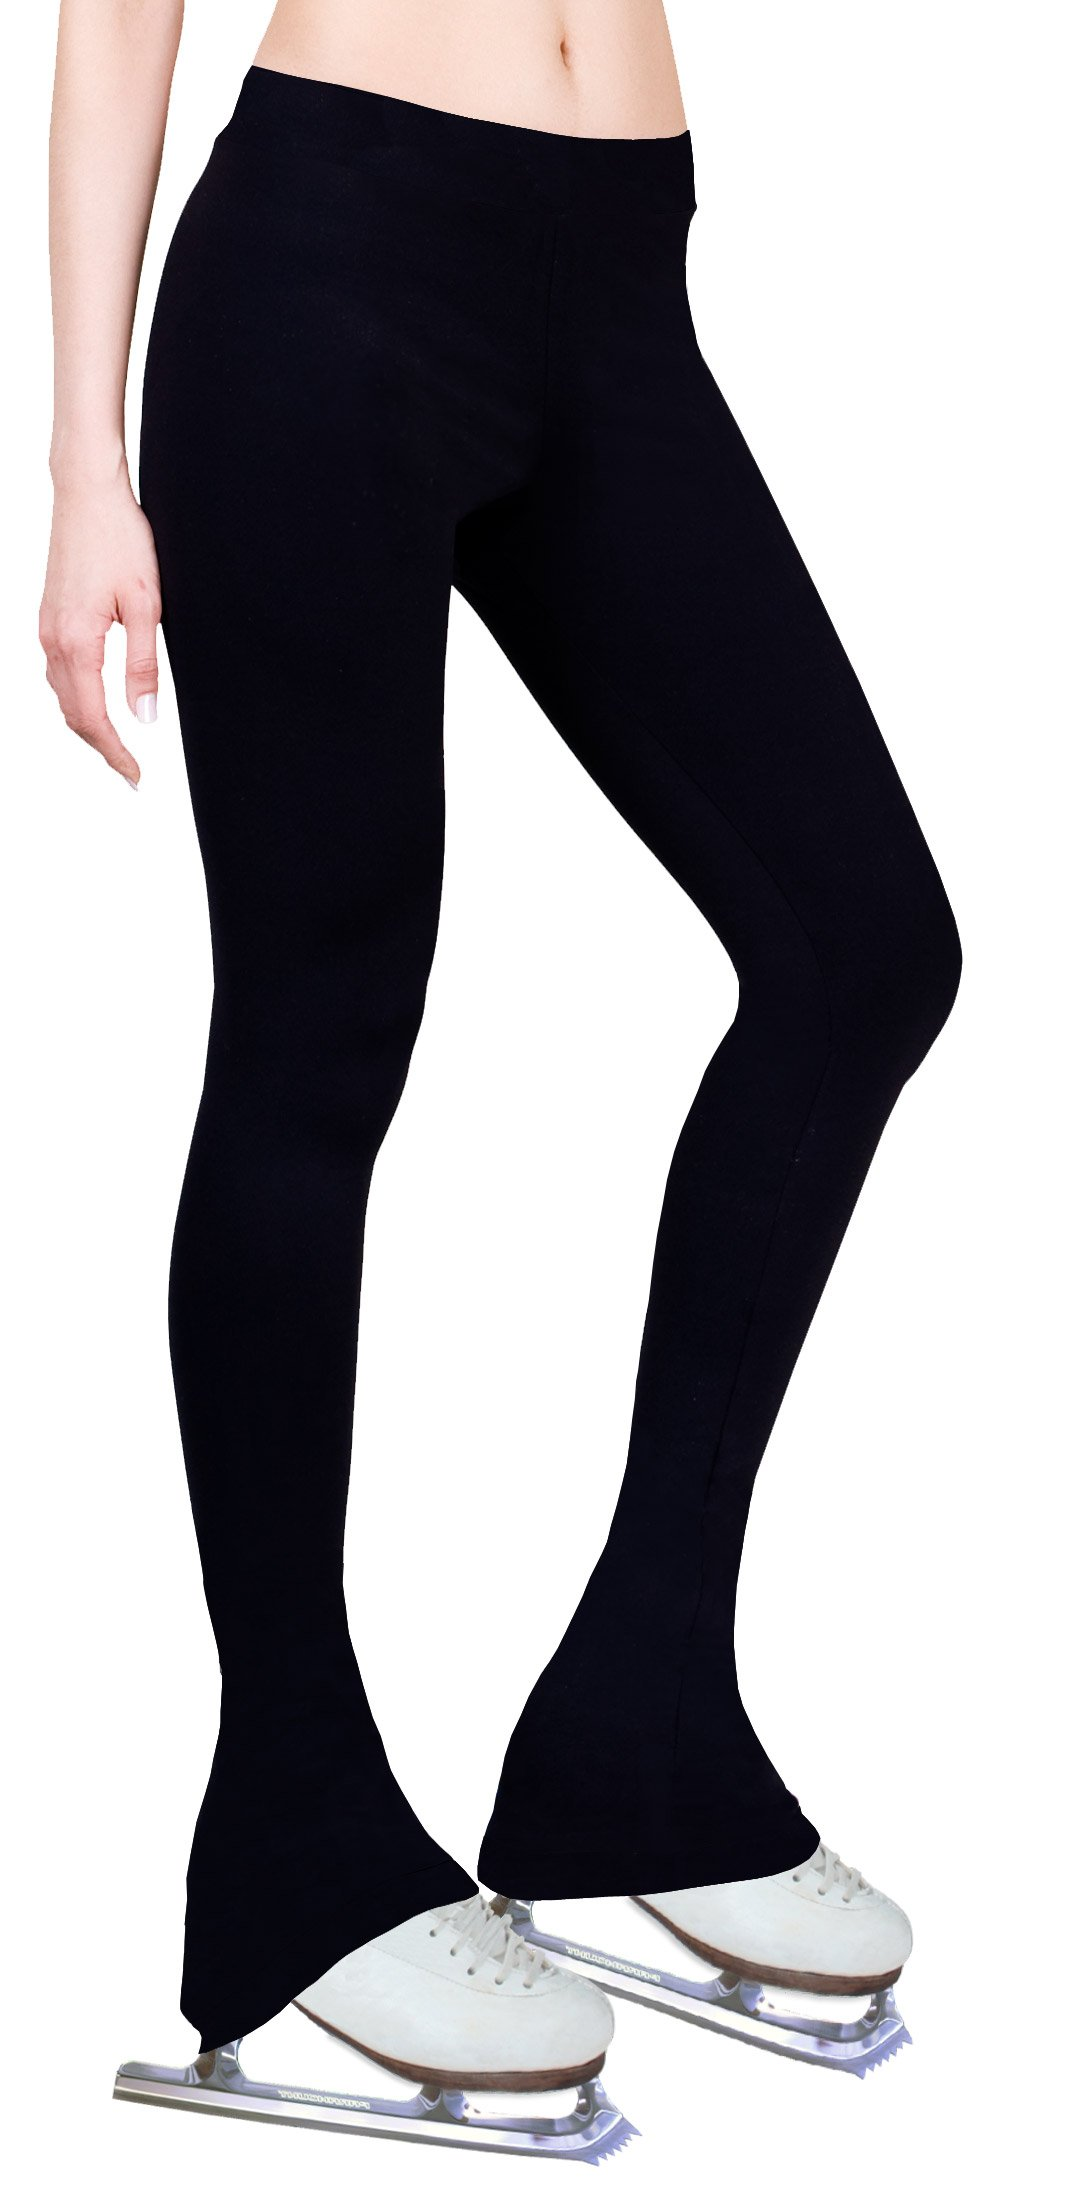 ny2 Sportswear Figure Skating Practice Pants - Black (Child Large) by ny2 Sportswear